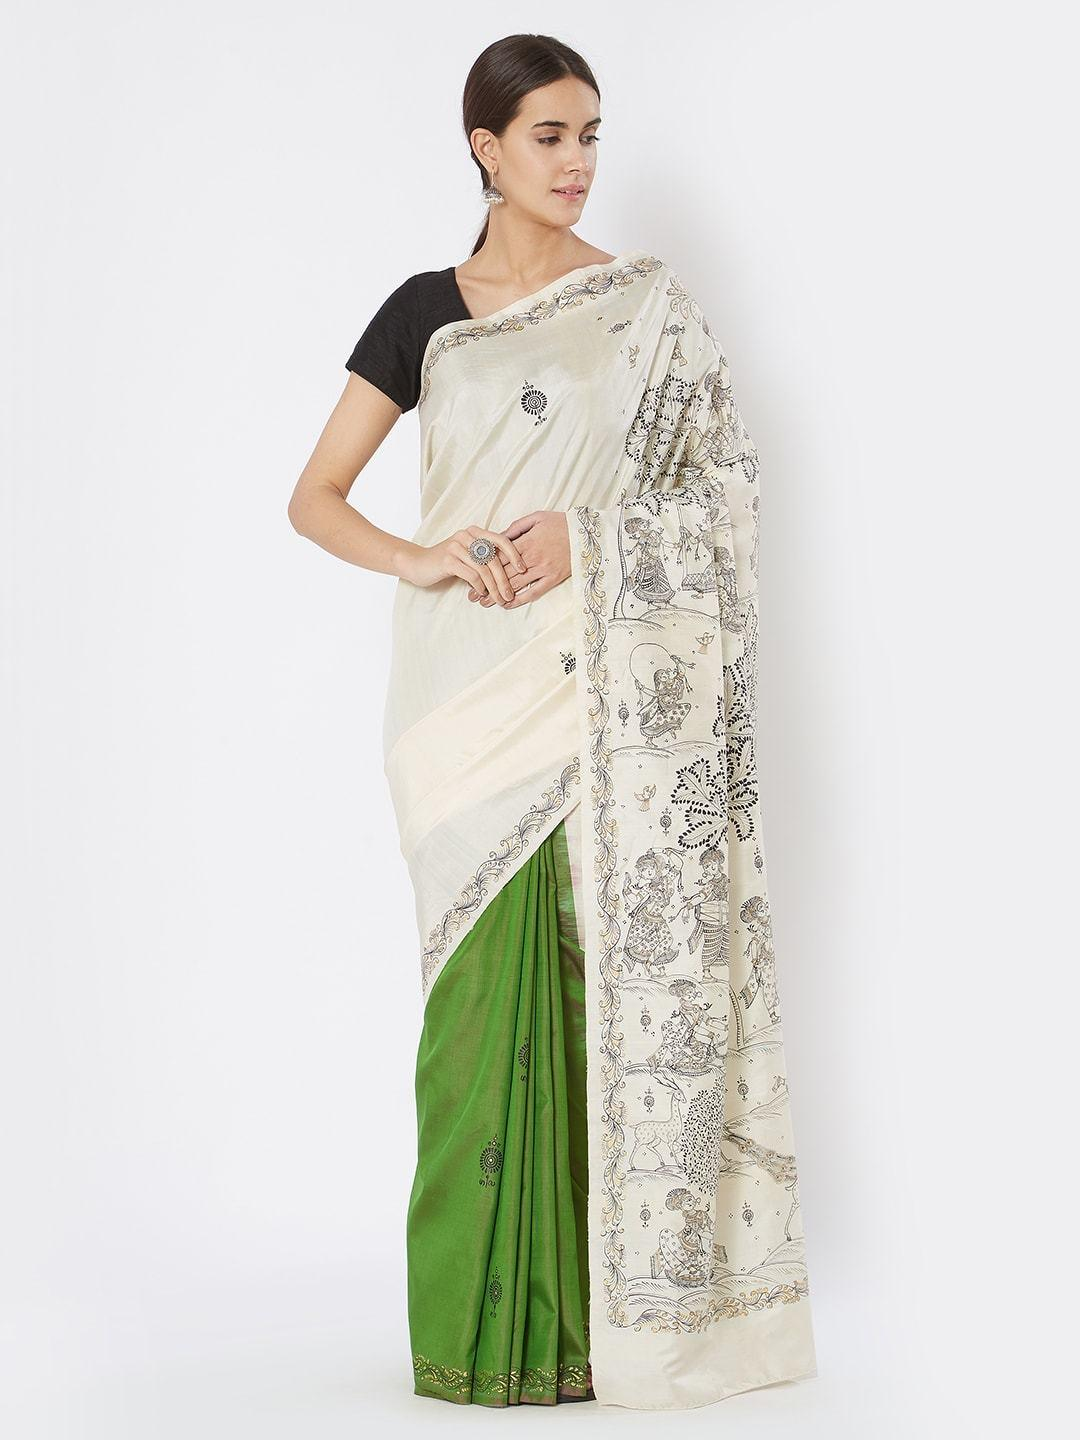 CraftsCollection.in - Green White Silk Saree with Pattachitra Motifs